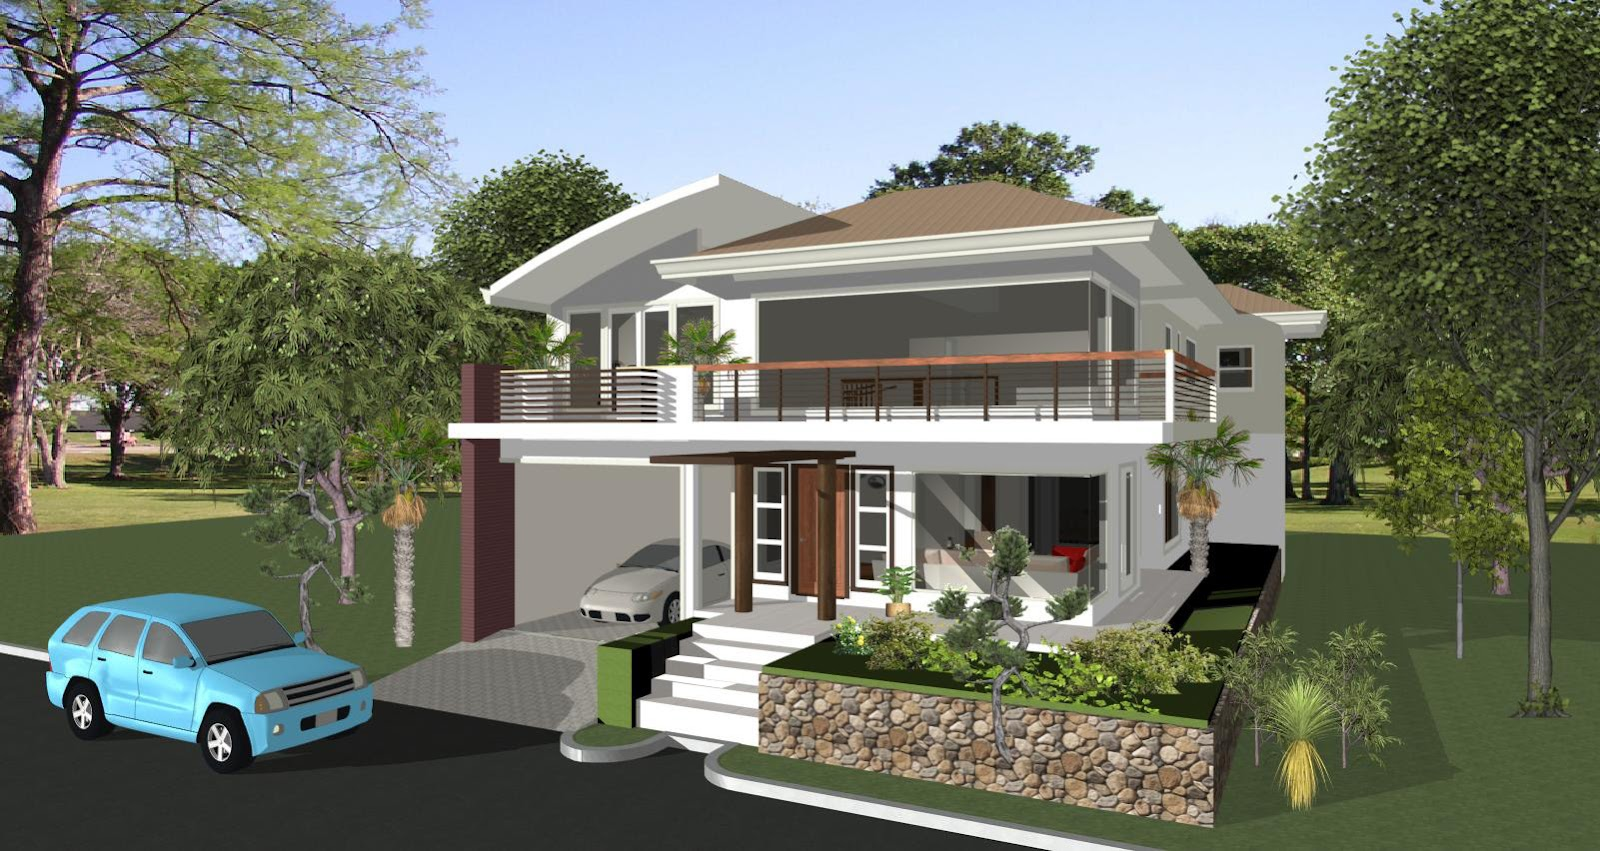 Images of houses design